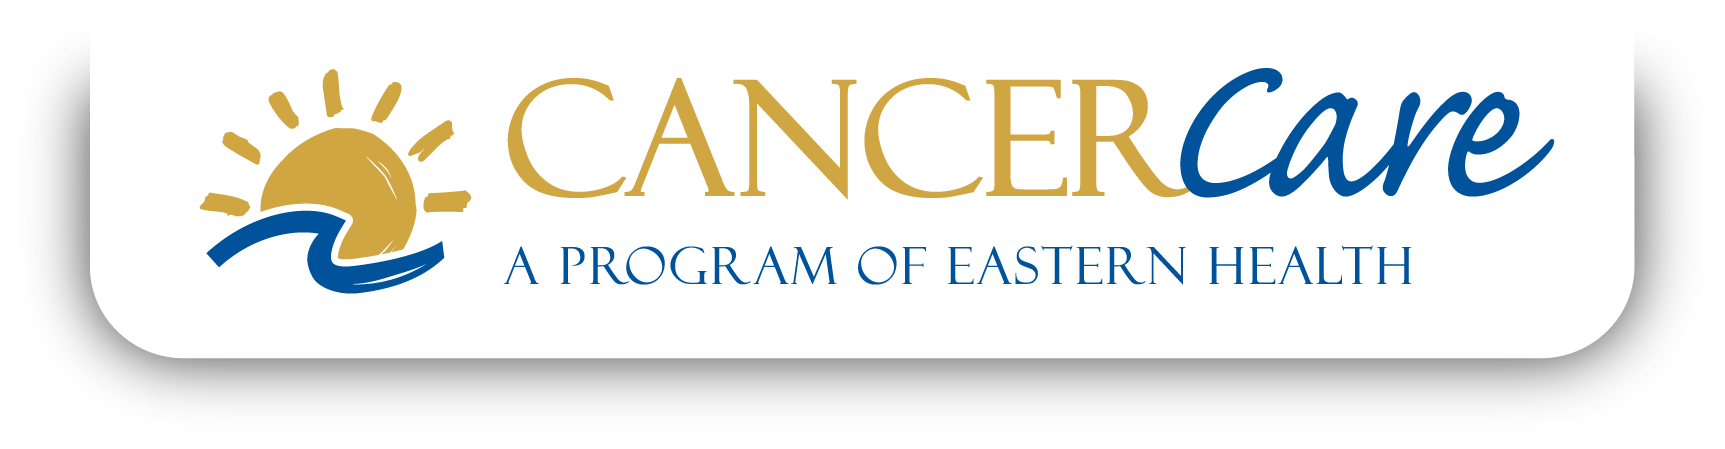 Cancer Care Program logo